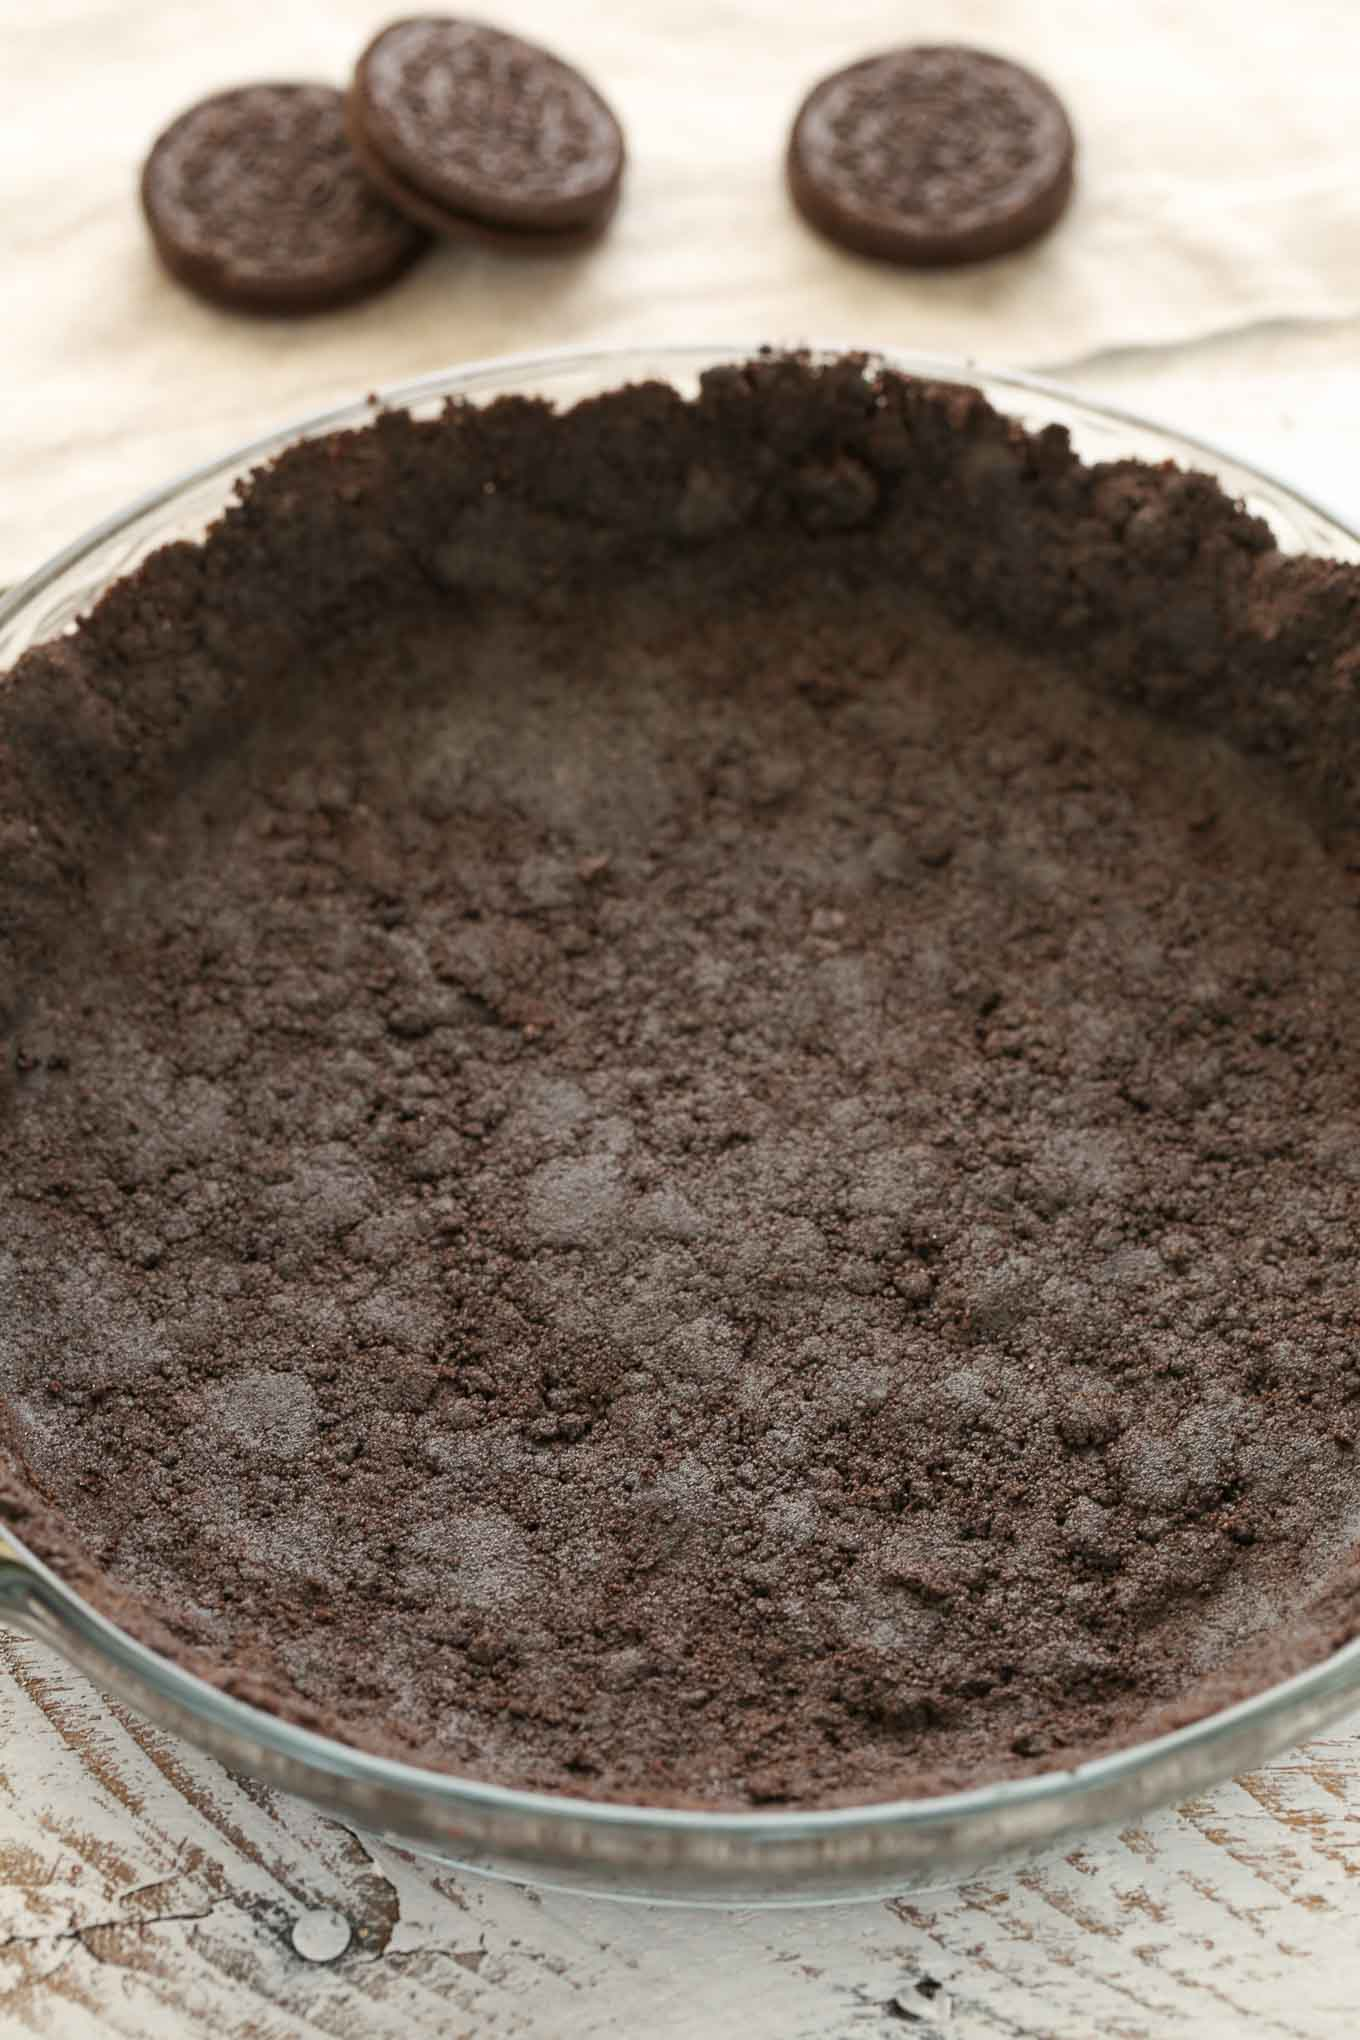 Learn how to make your own homemade Oreo pie crust with just two ingredients in less than 10 minutes. Perfect for baked or no-bake pies!